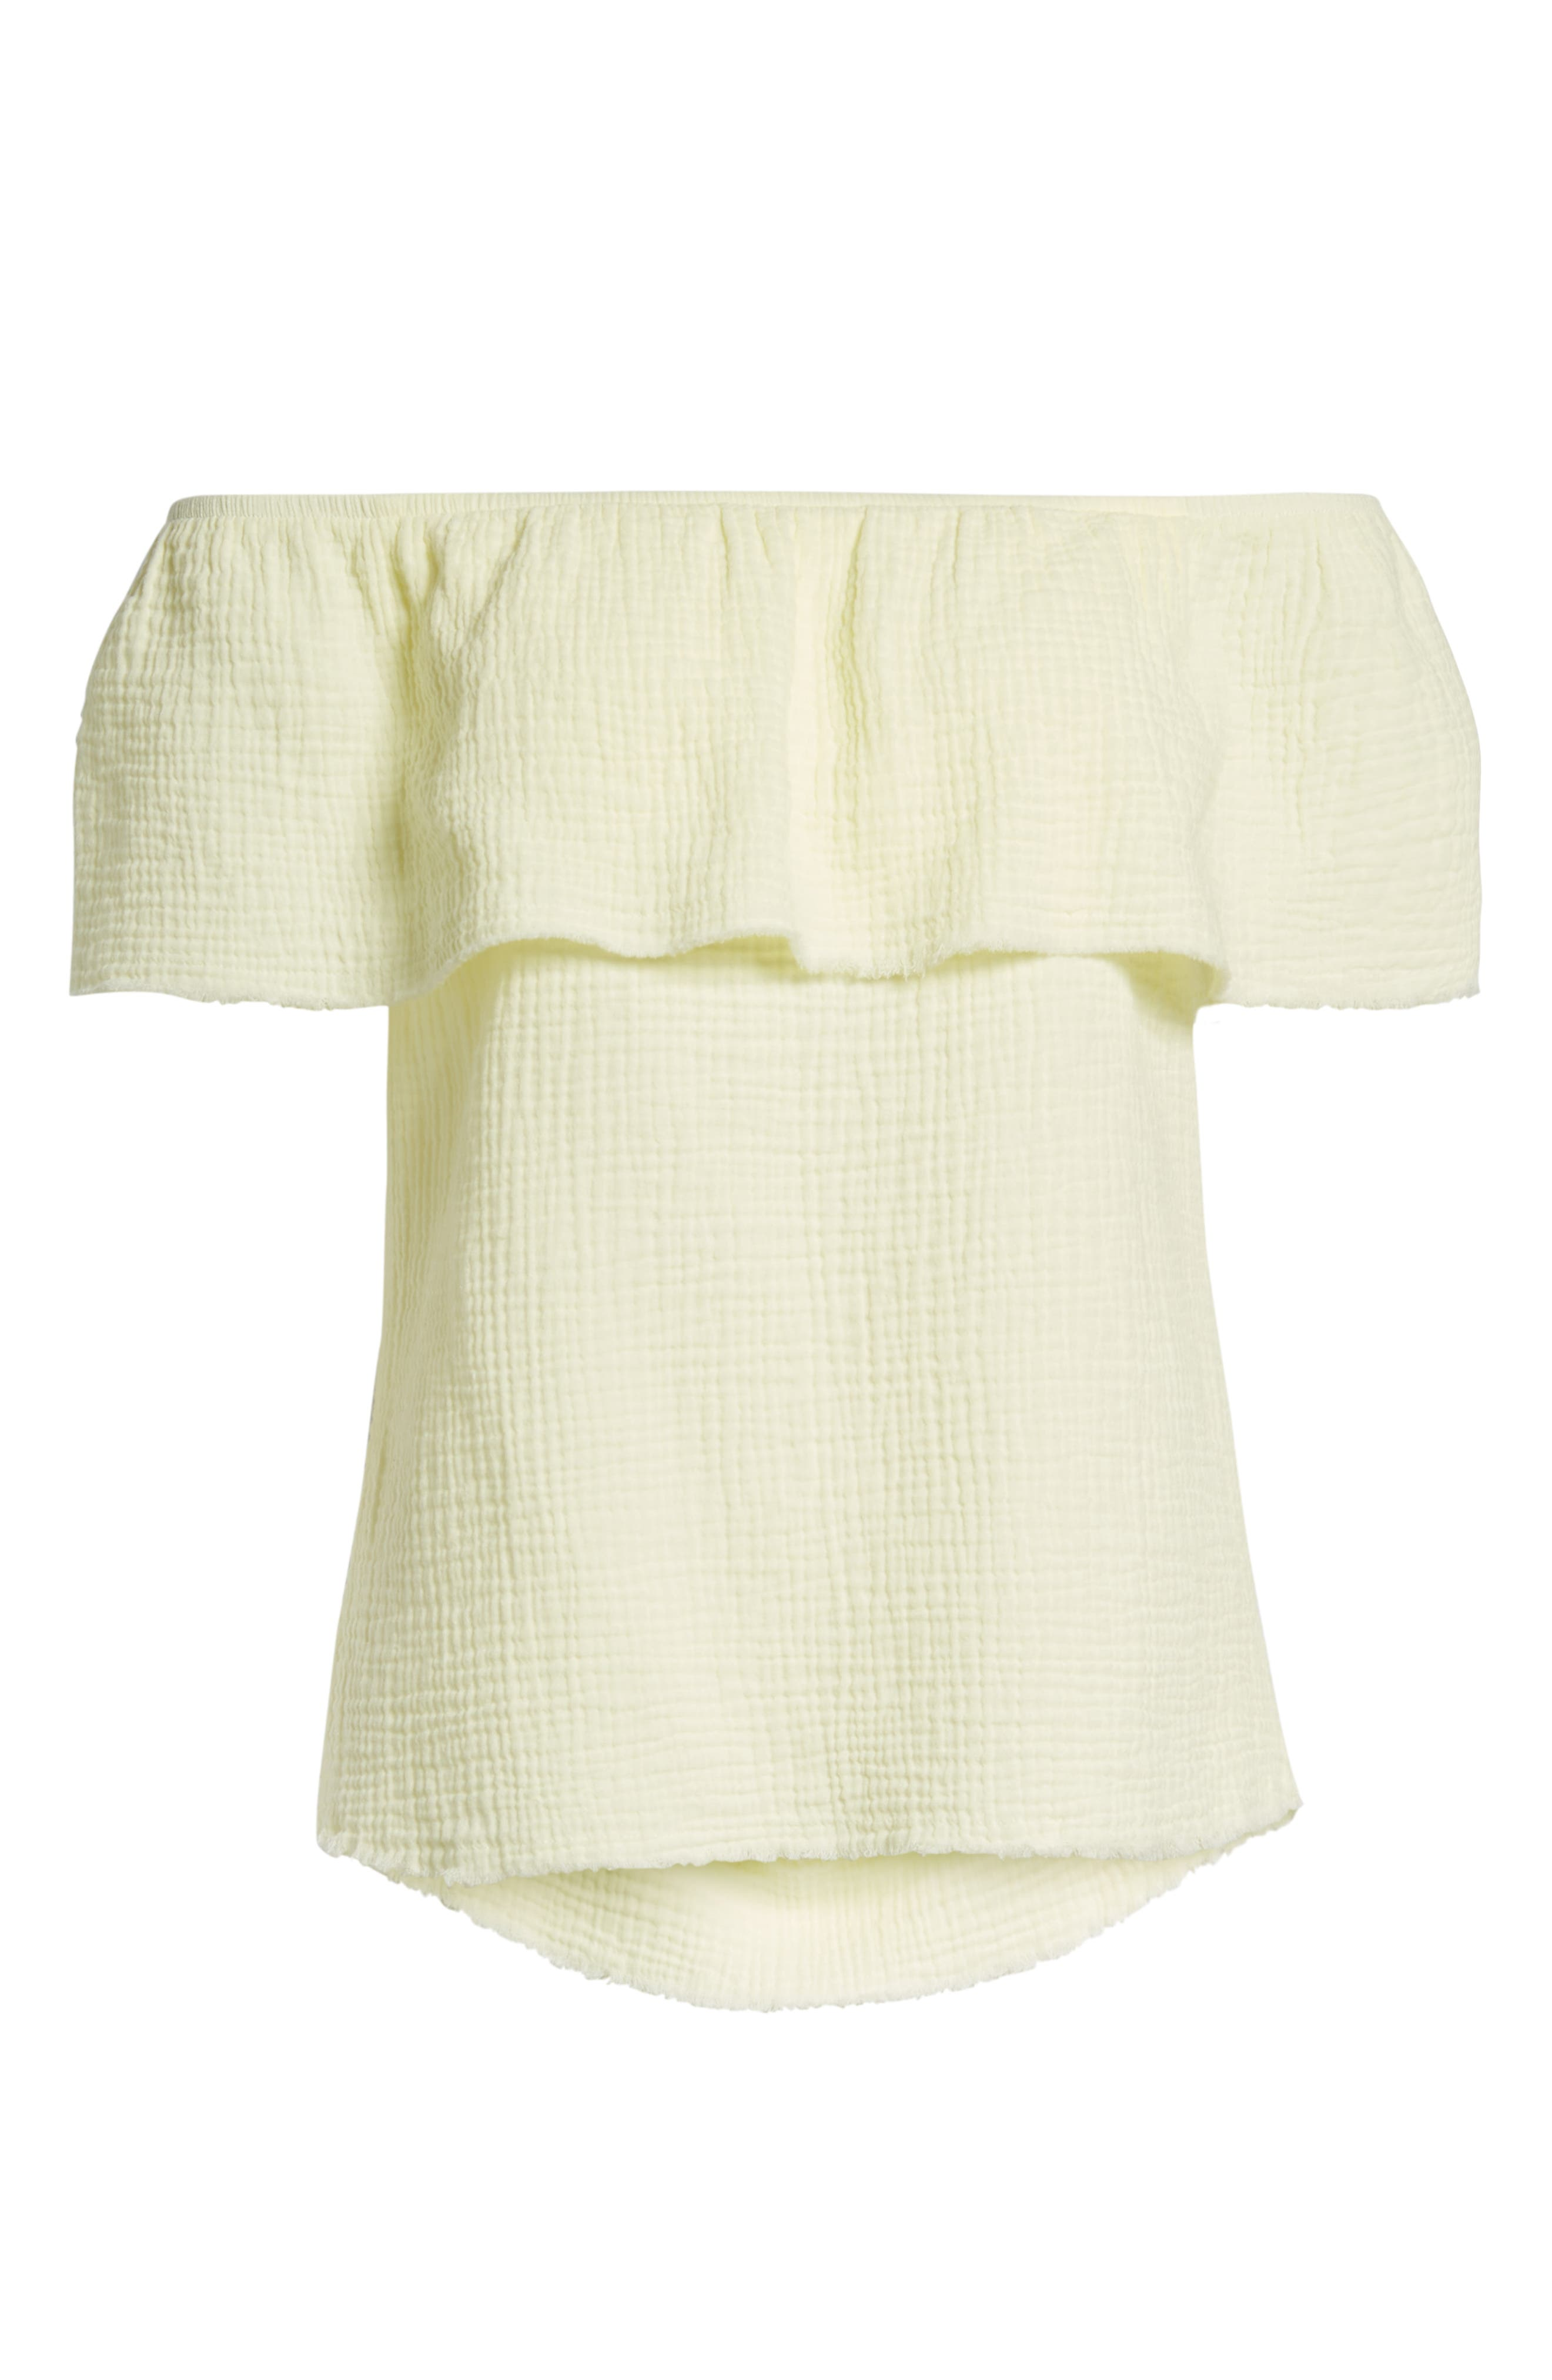 Ruffle Off the Shoulder Top,                             Alternate thumbnail 7, color,                             Yellow